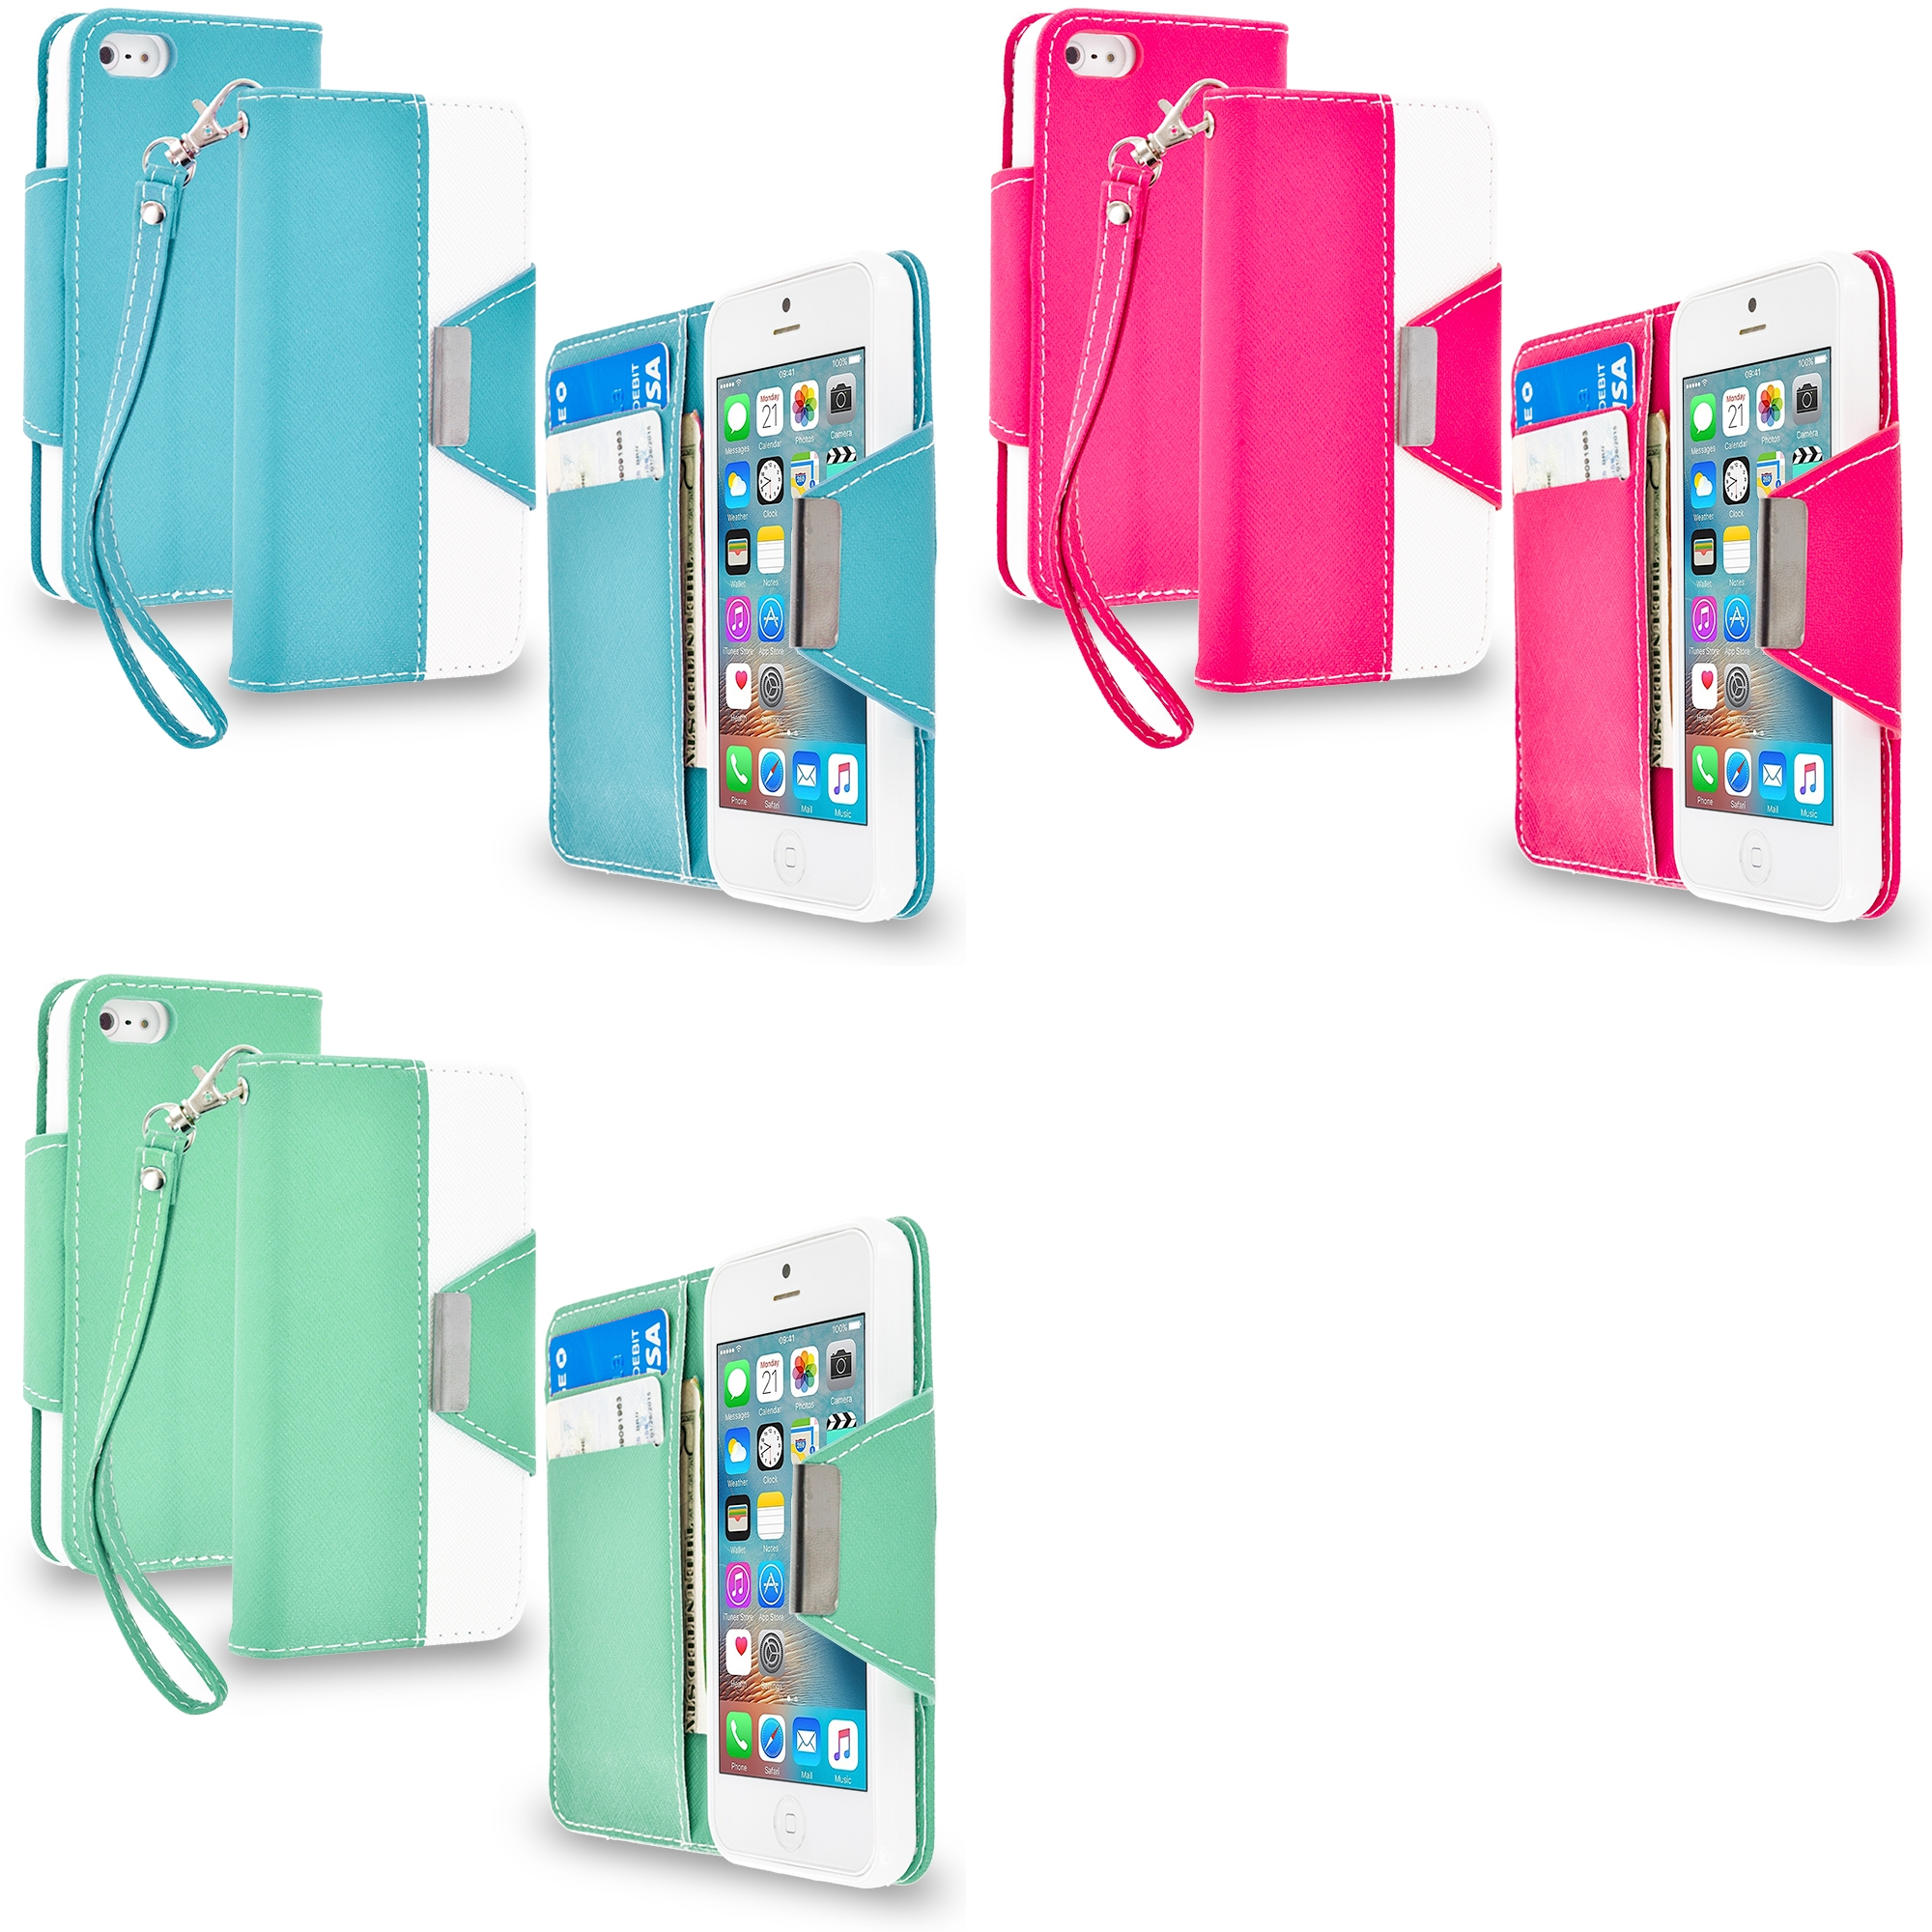 Apple iPhone 5/5S/SE Combo Pack : Baby Blue Wallet Magnetic Metal Flap Case Cover With Card Slots